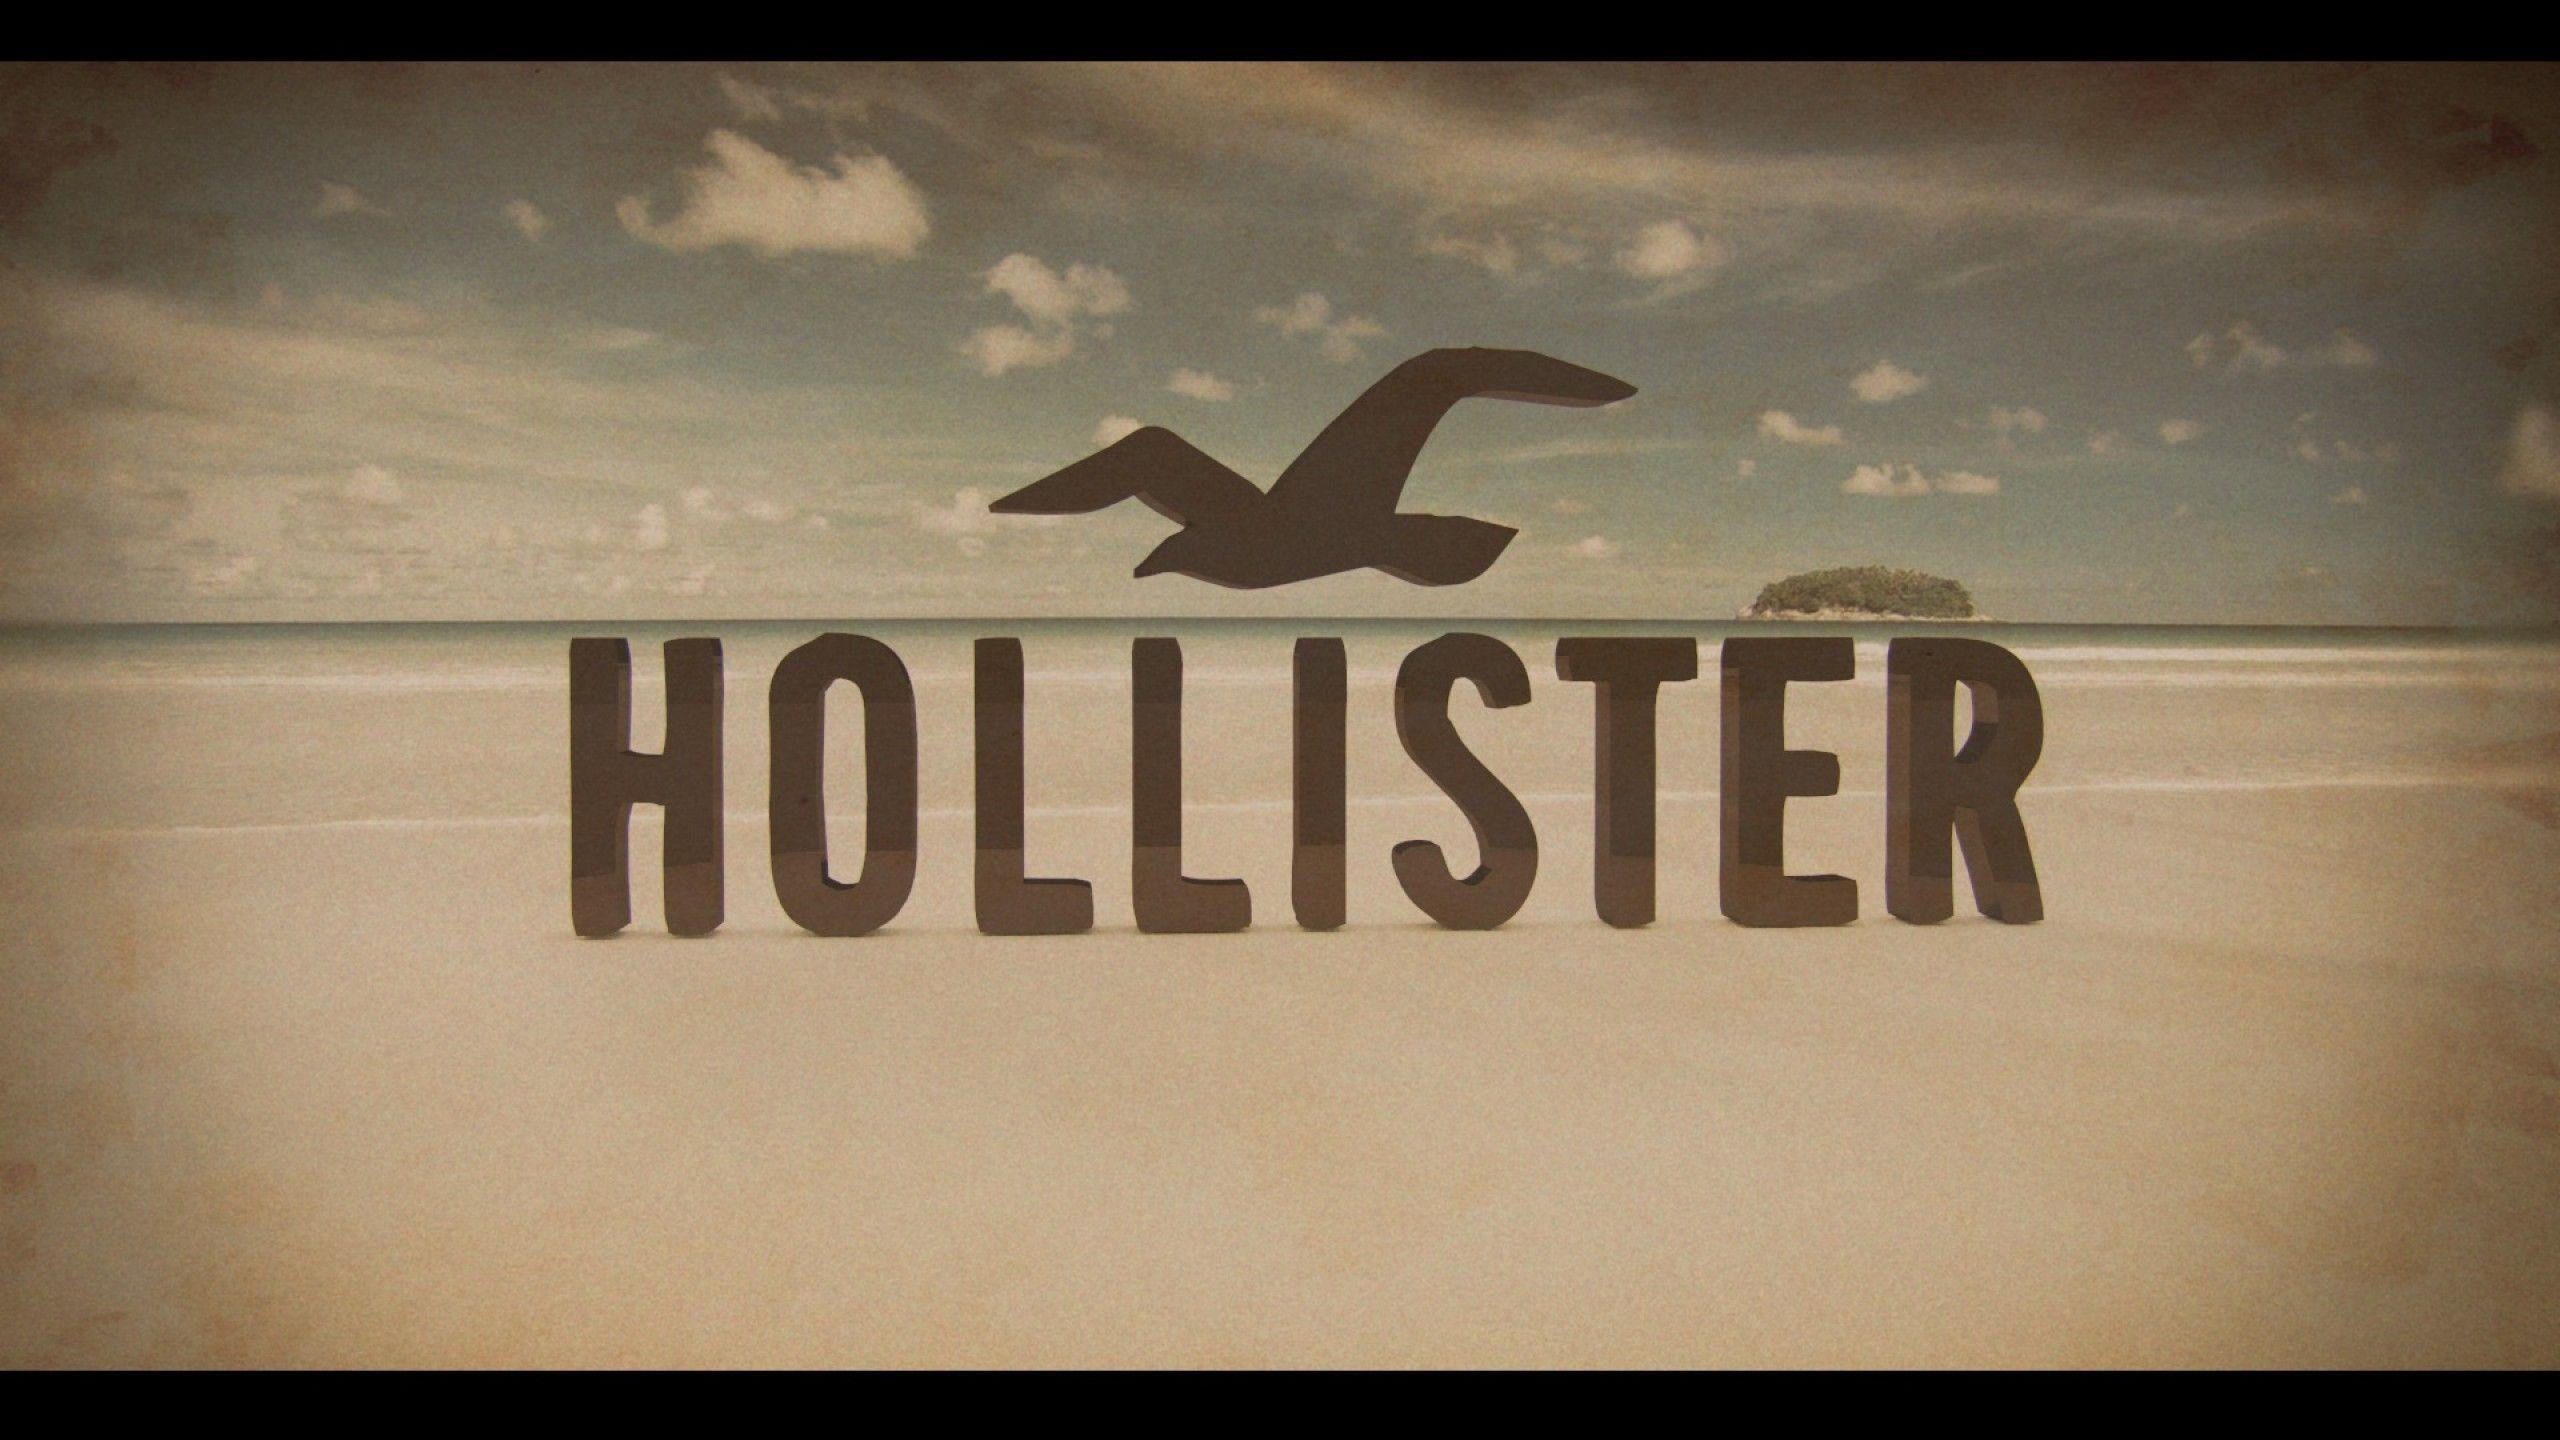 Hollister Wallpapers - Top Free